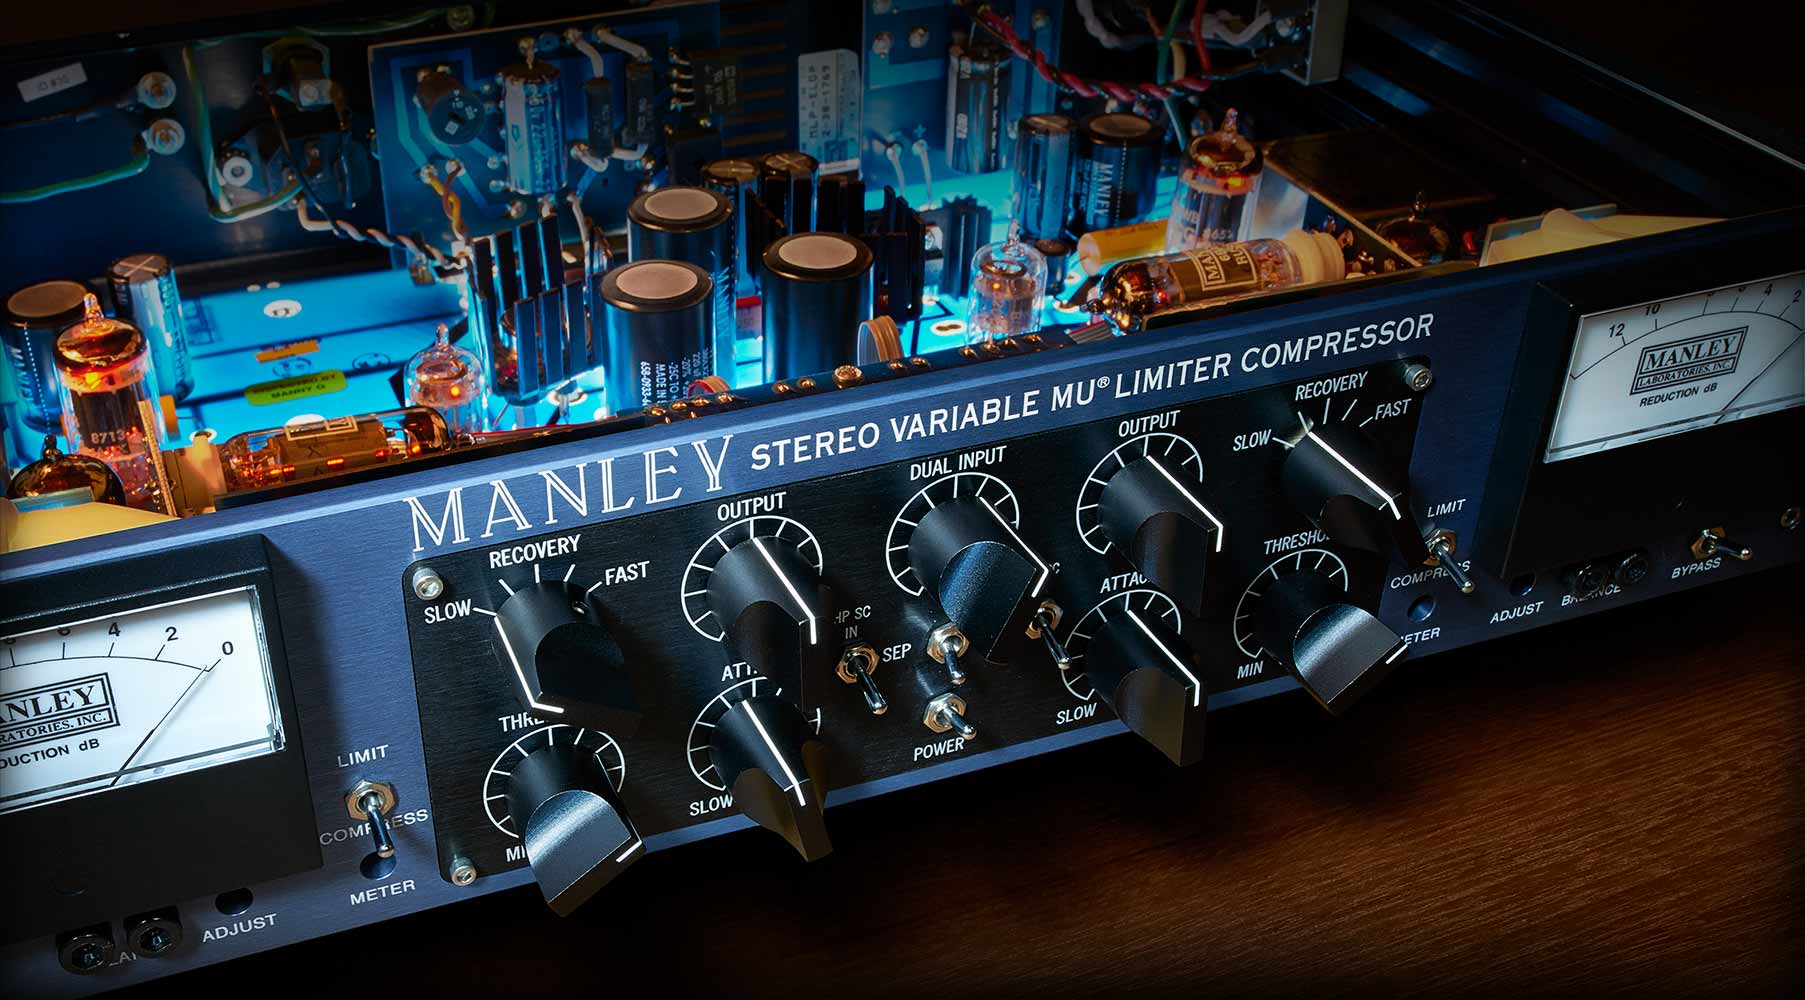 Manley® Variable Mu Limiter Compressor